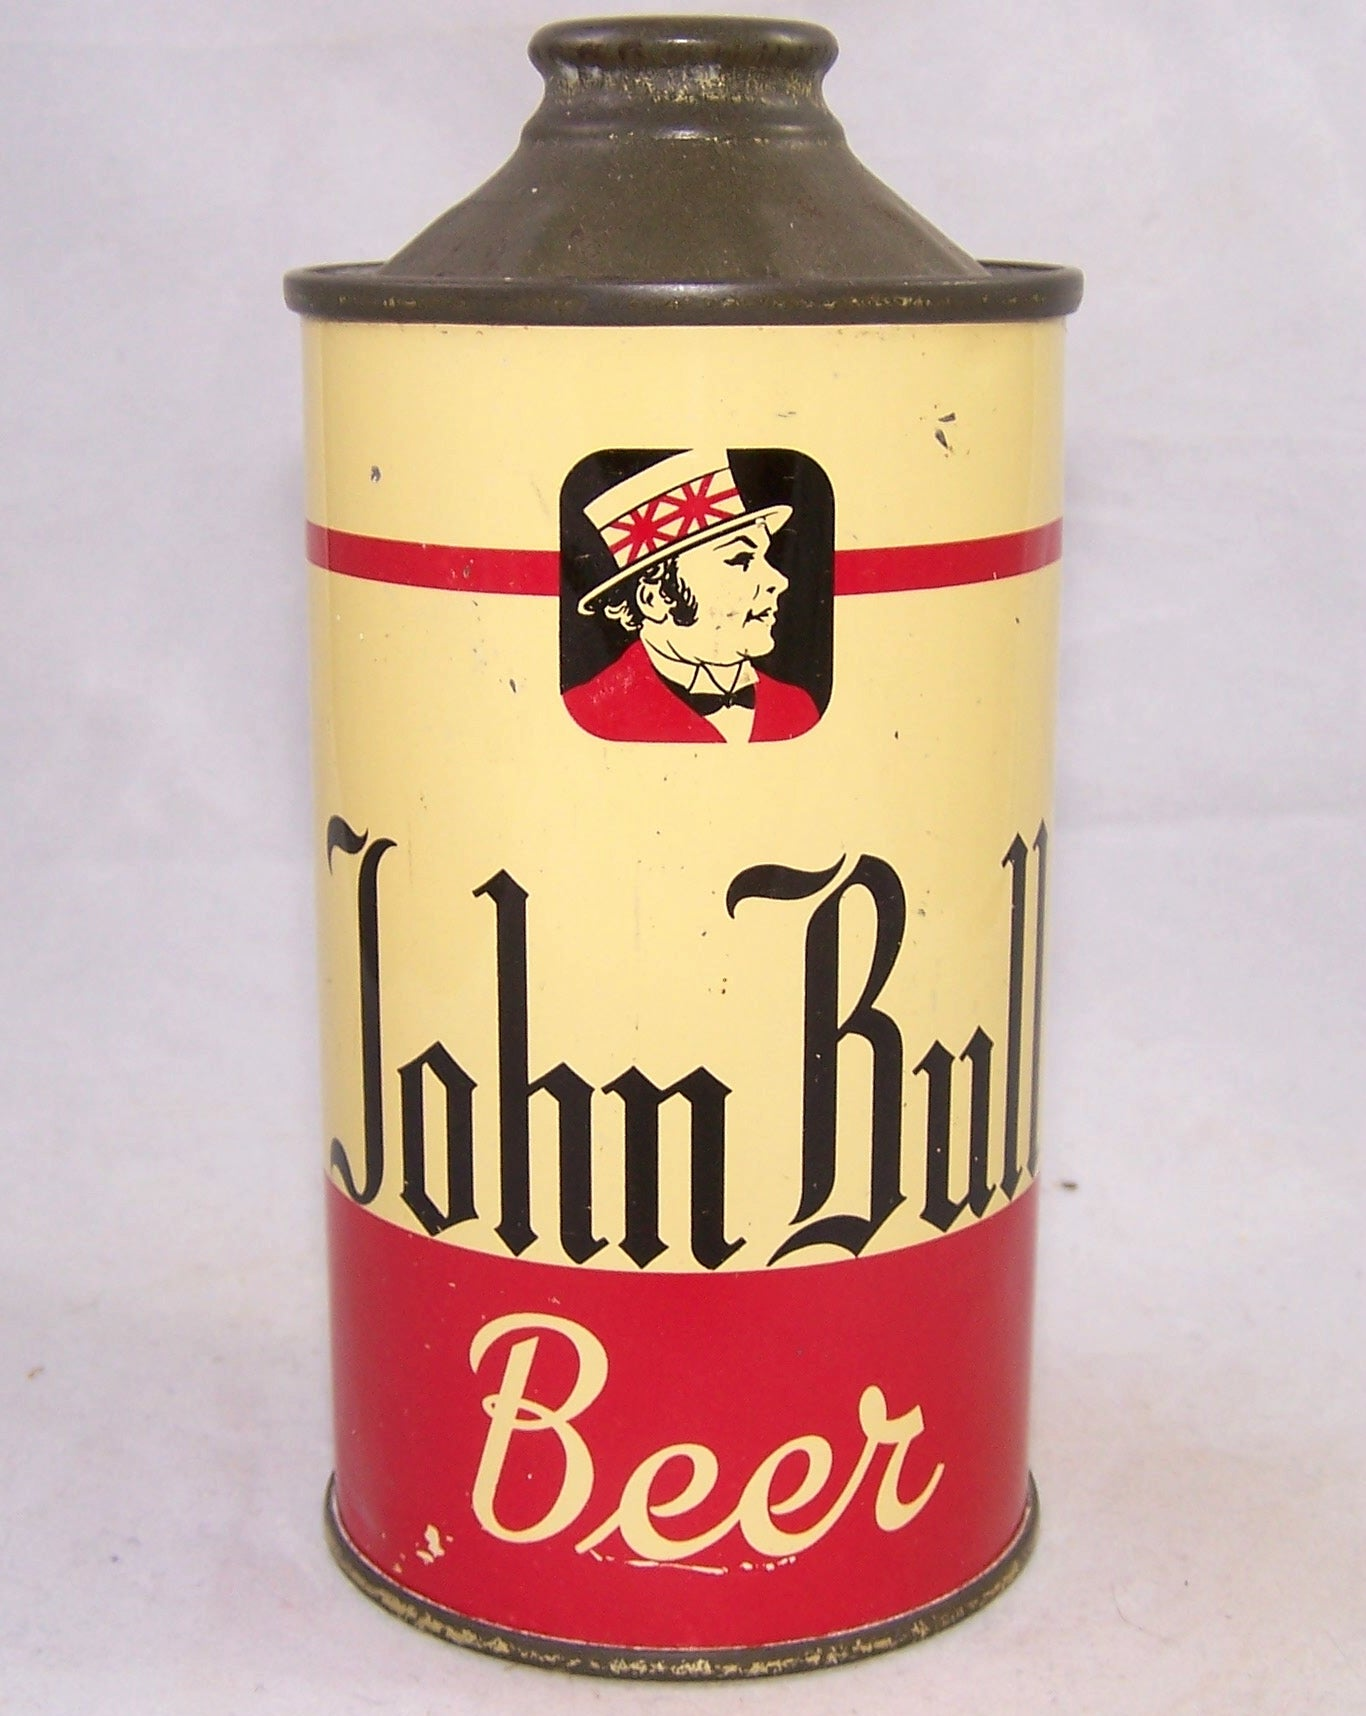 John Bull Beer Low Pro Cone top, USBC 170-16, Grade 1/1+ Sold on eBay 10/22/18